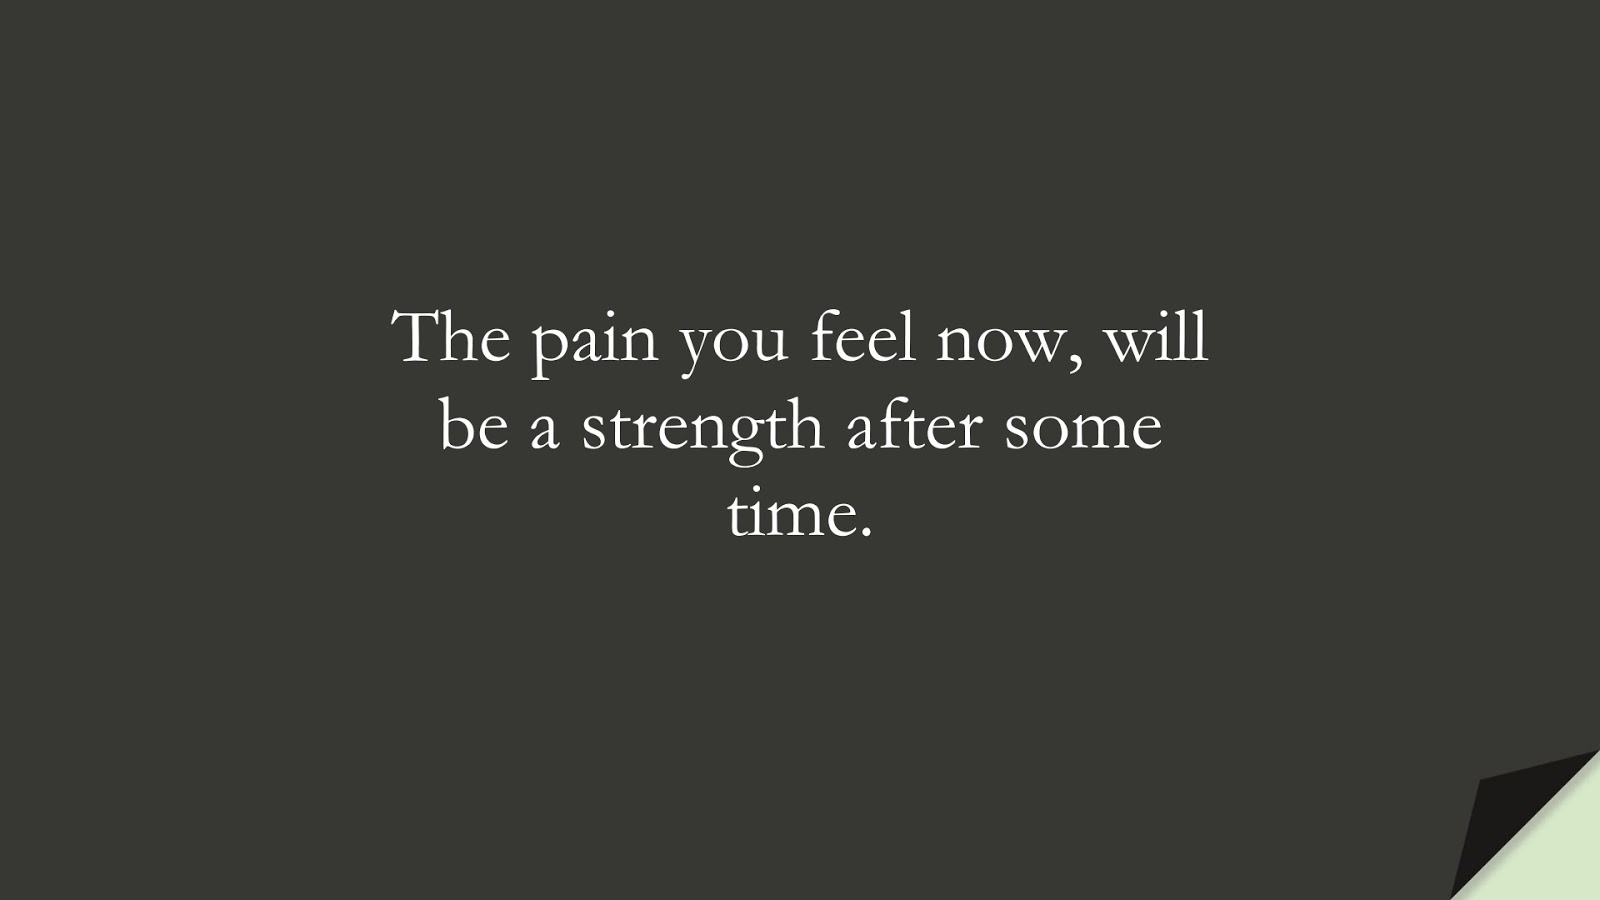 The pain you feel now, will be a strength after some time.FALSE